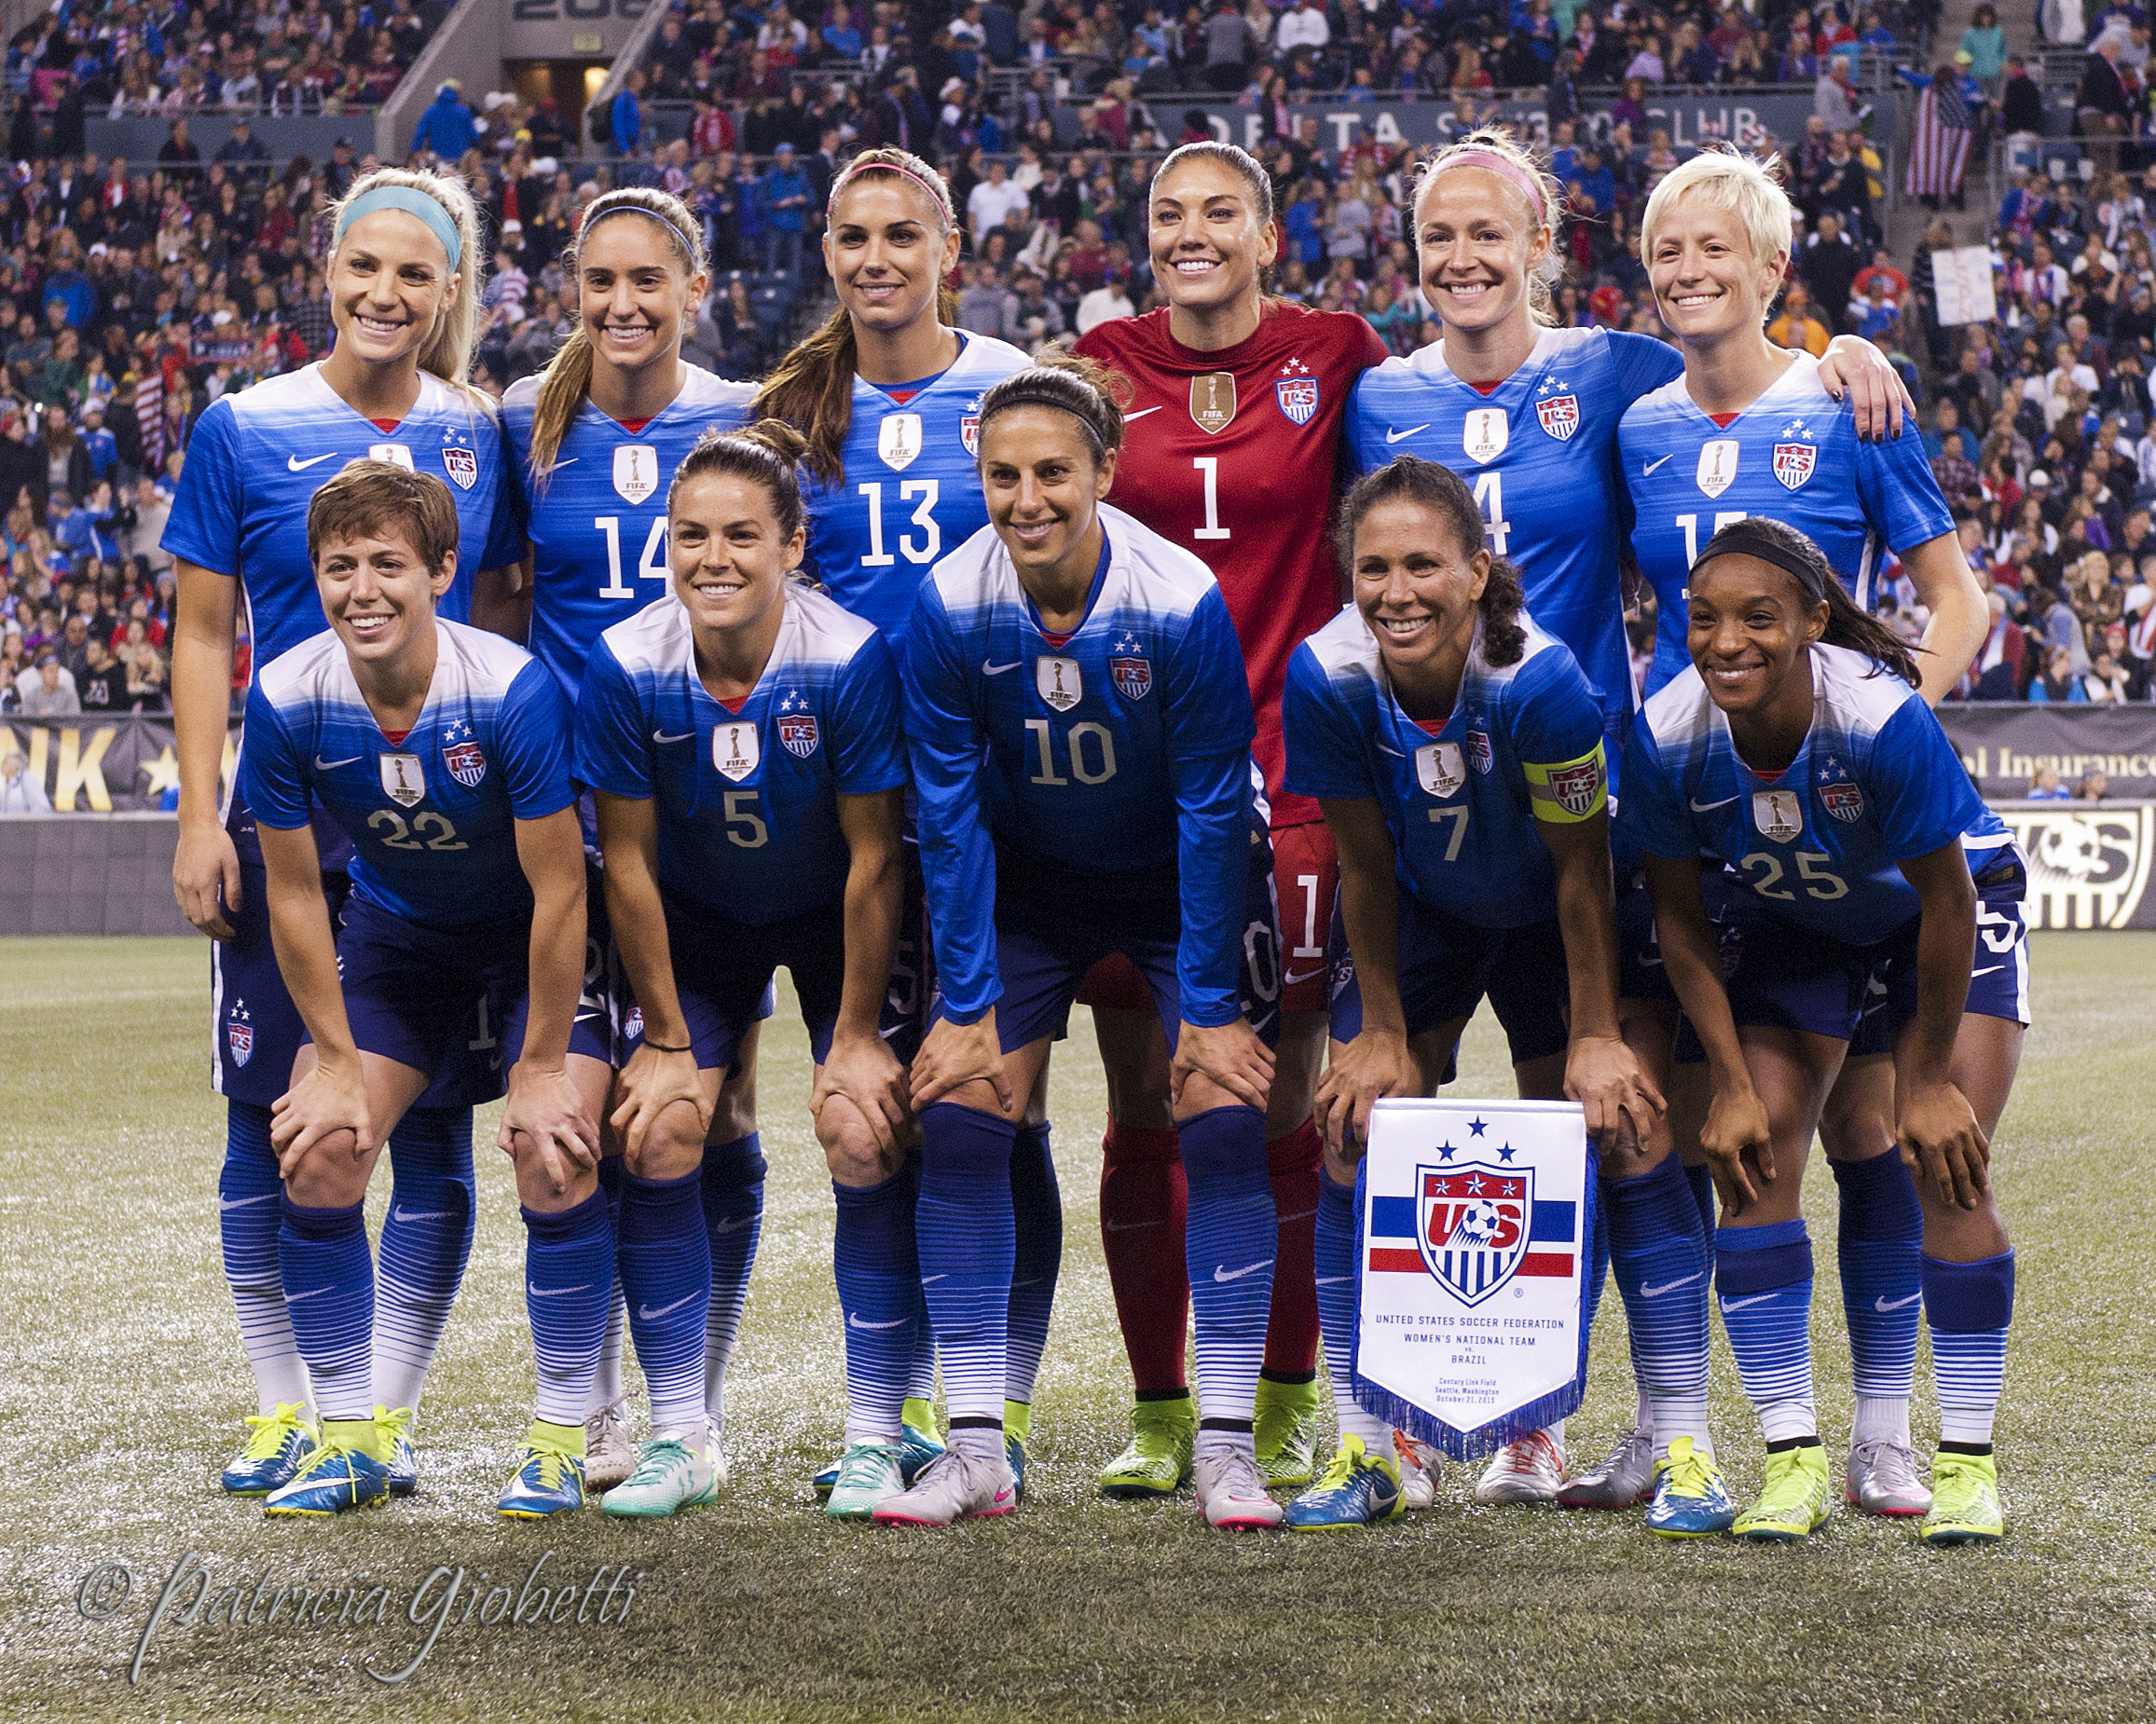 The Shebelieves Cup Will Take Place In Tampa Nashville And Boca Raton In March